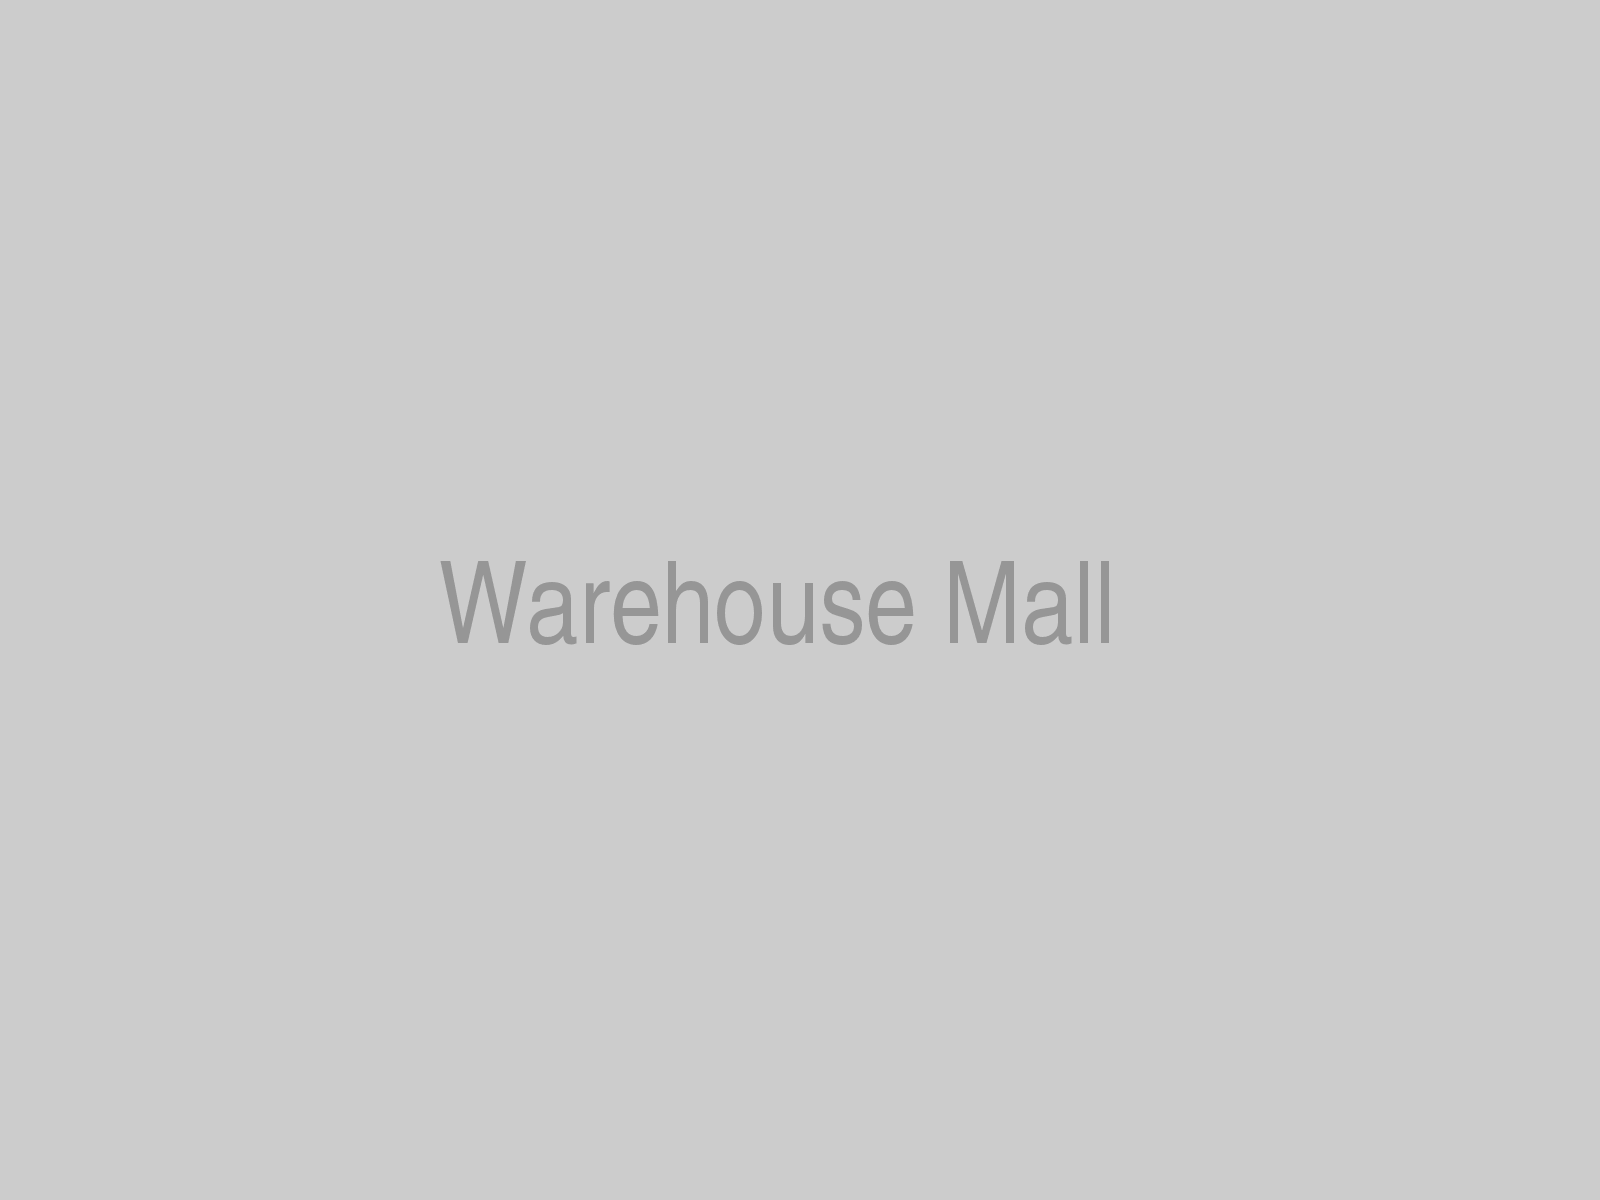 Warehouse Mall